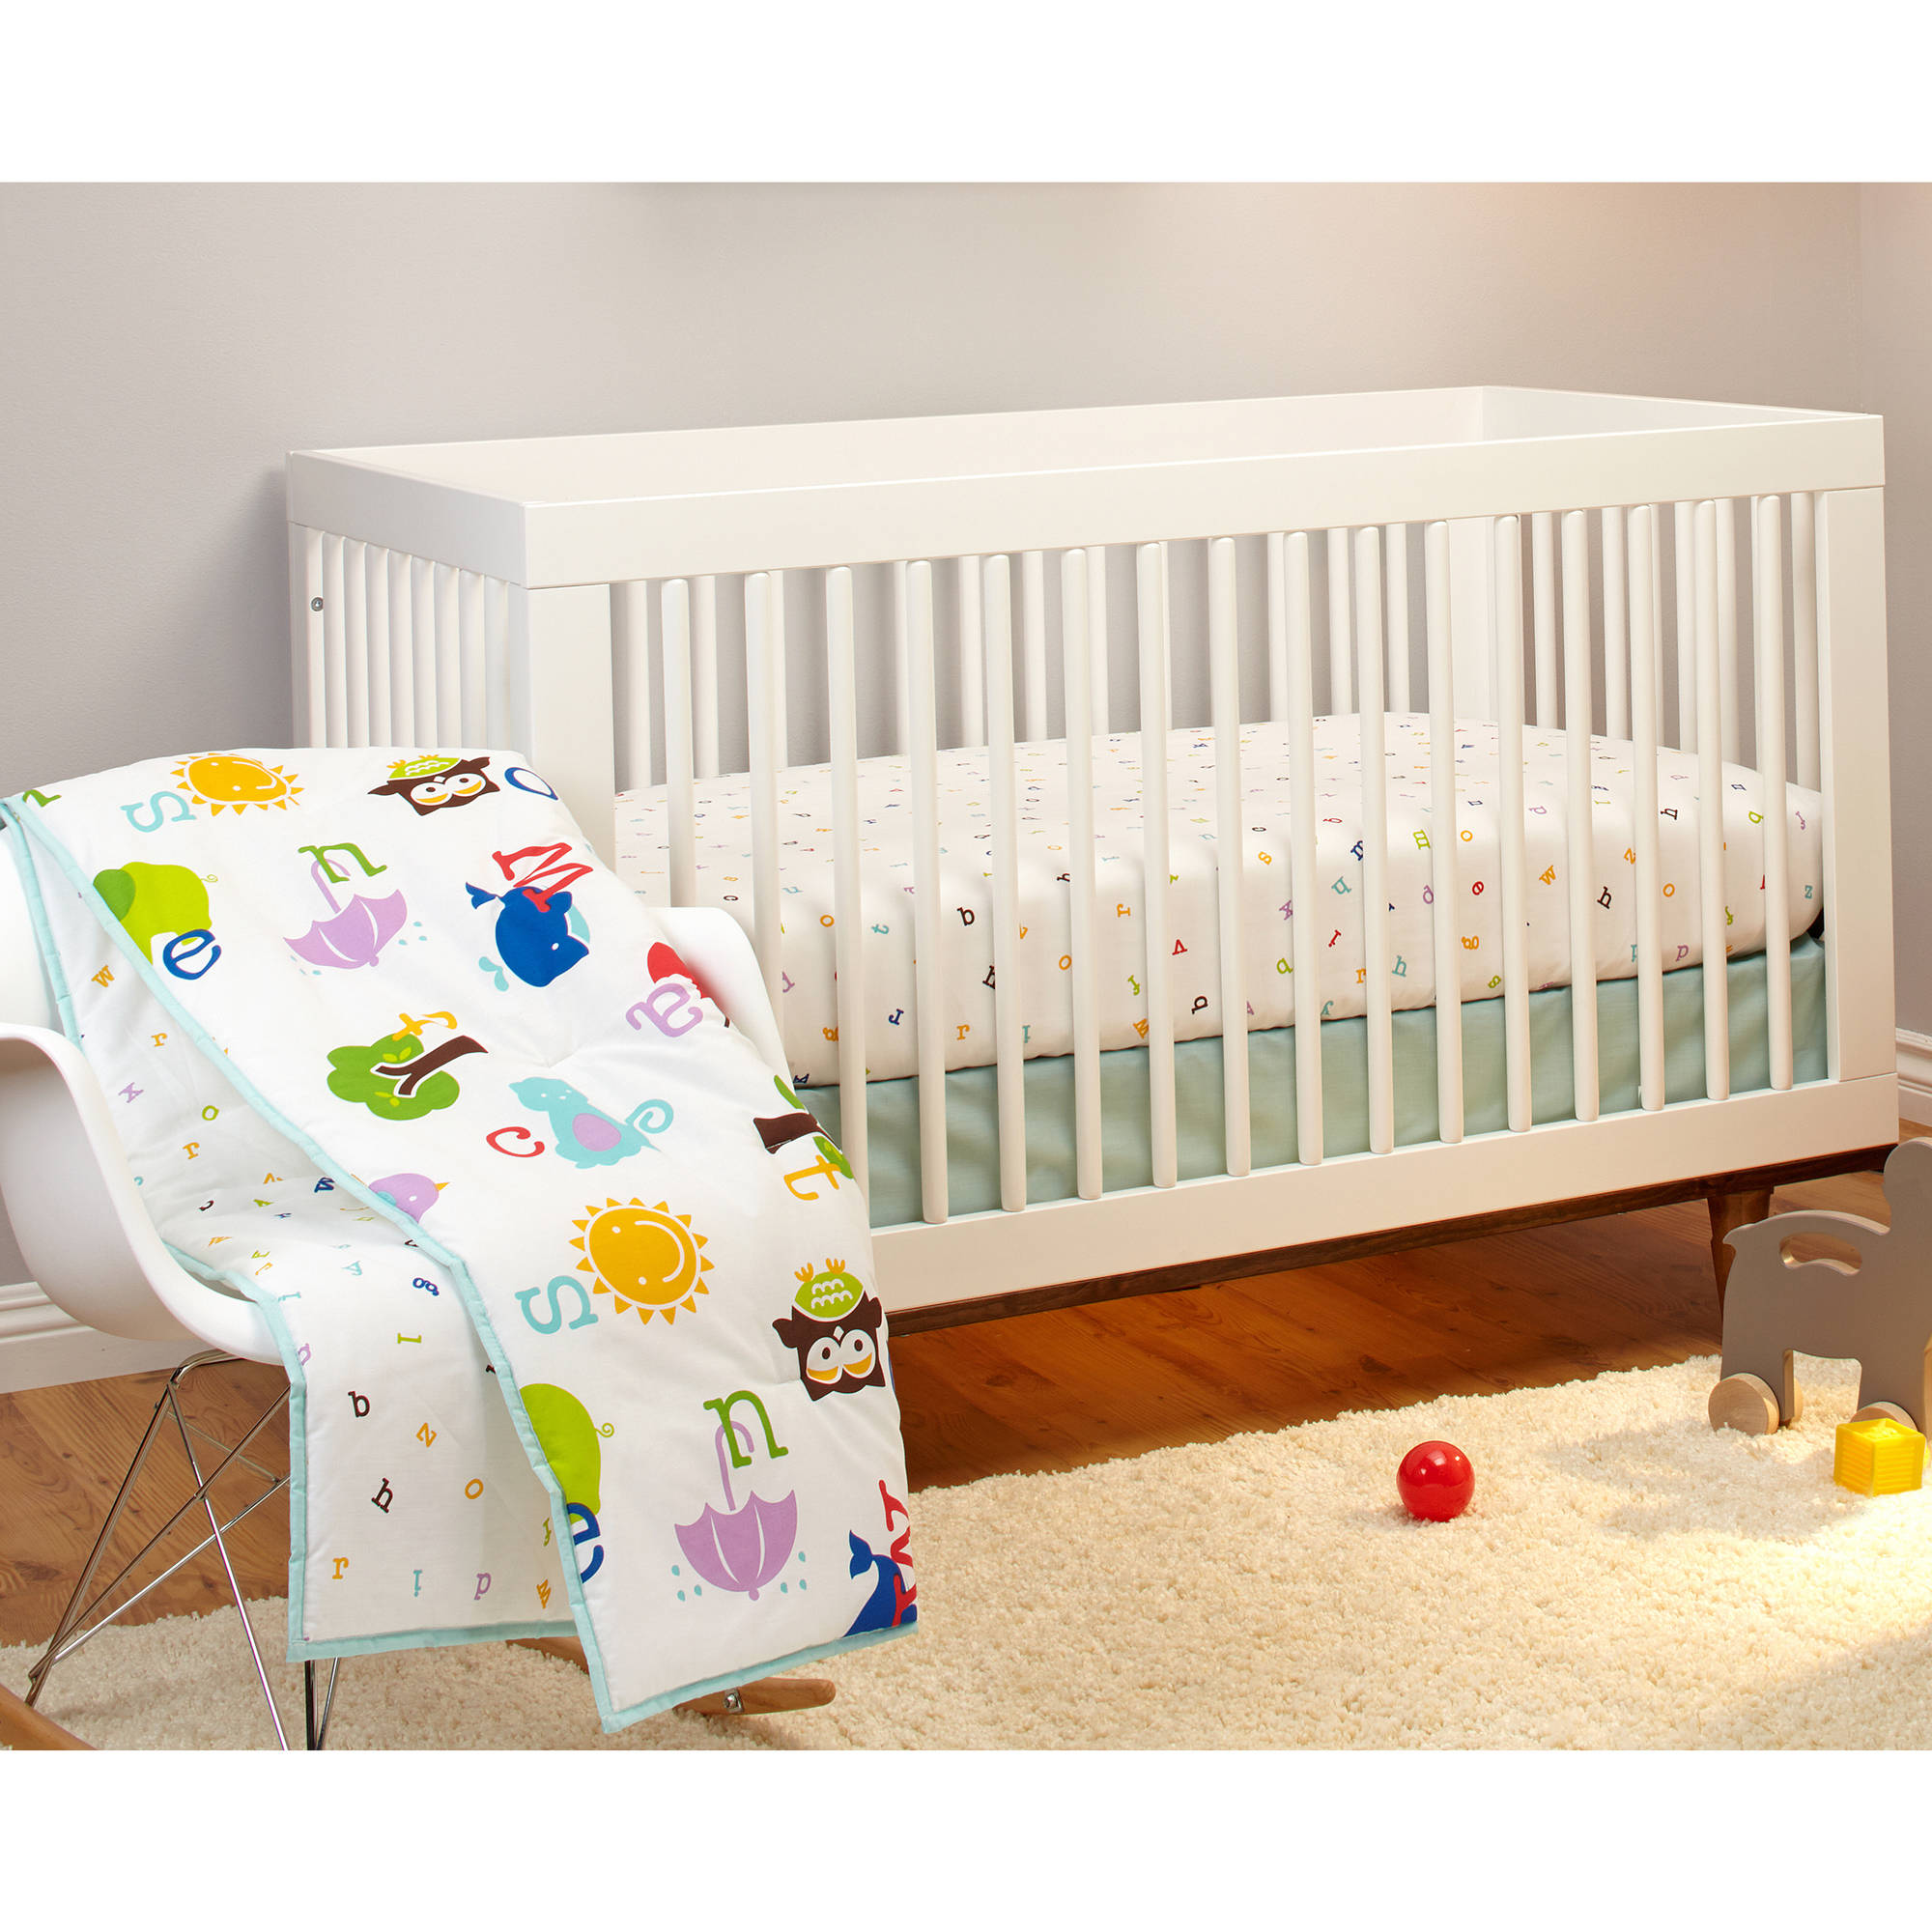 Little Bedding by Nojo Alphabet Play Crib Bedding Set